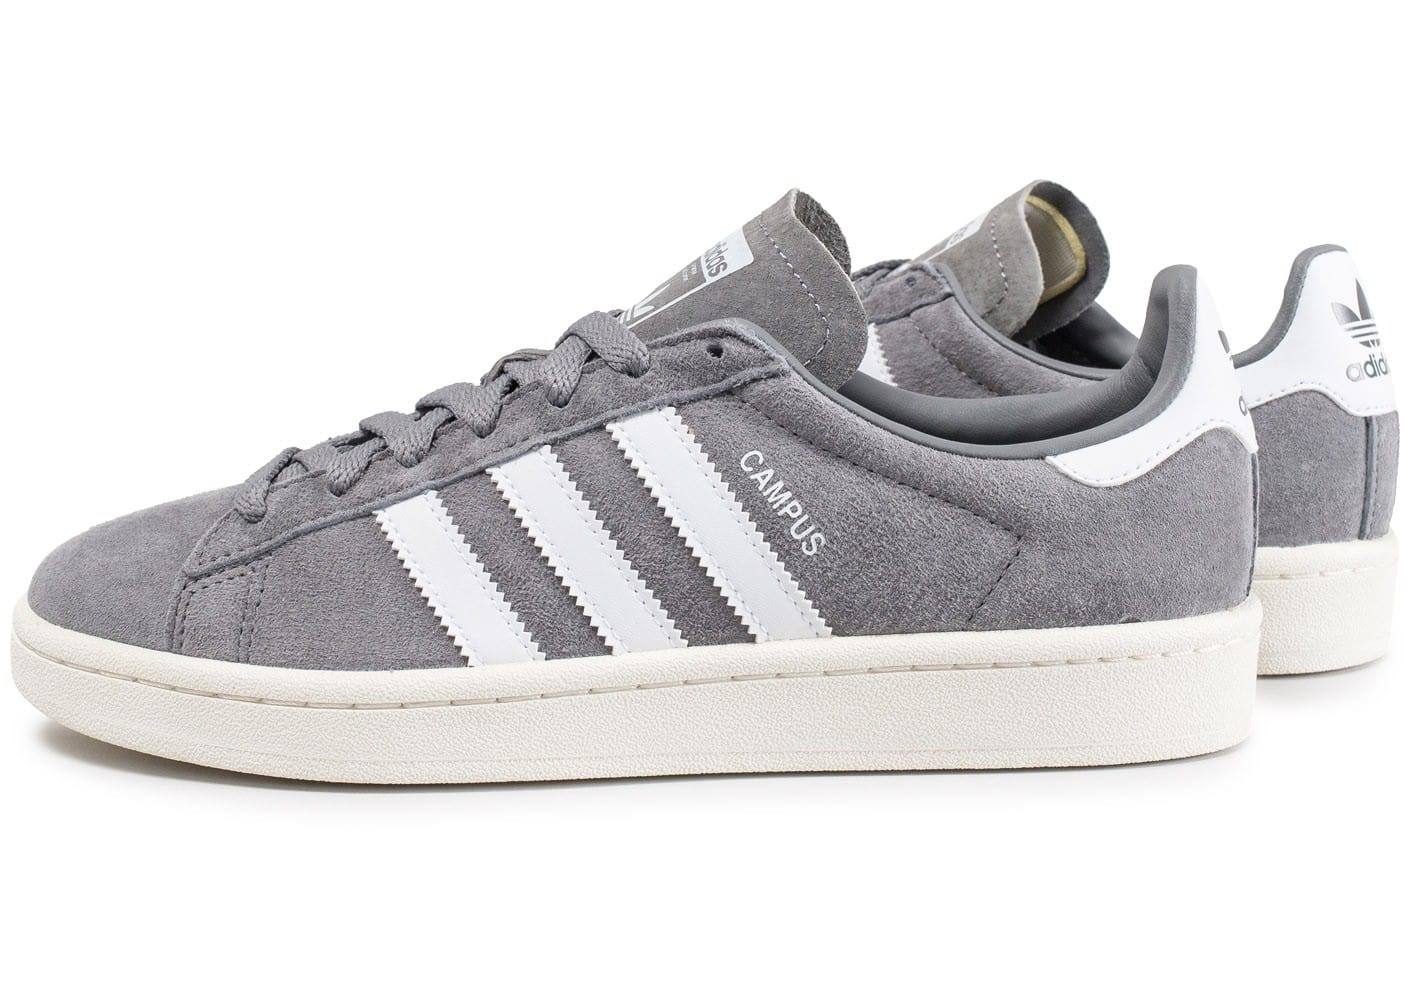 Adidas Campus chaussures grise